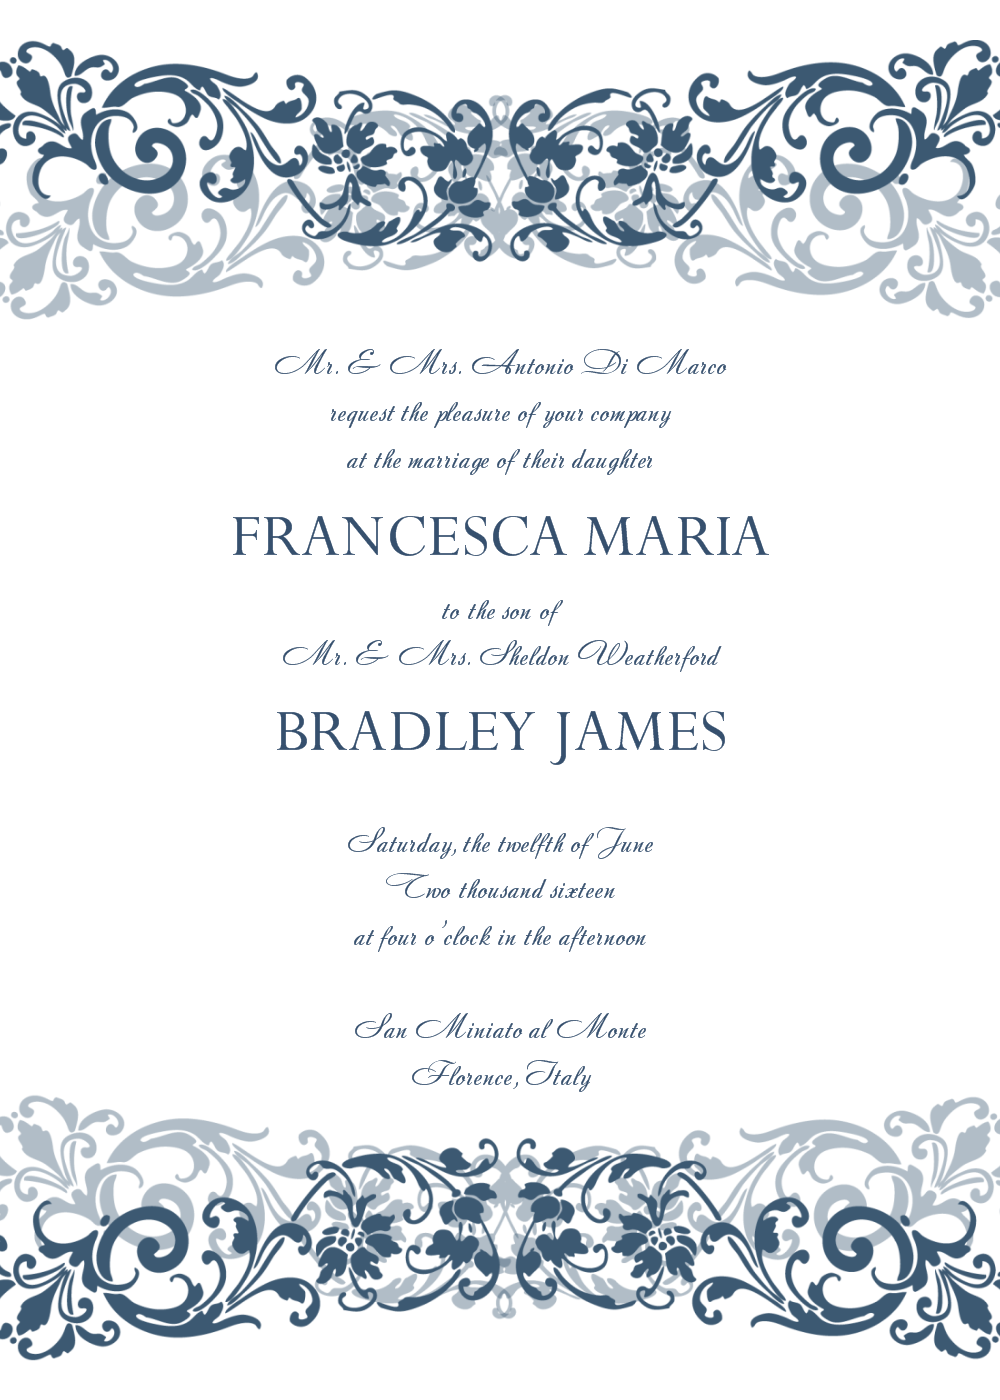 Free Wedding Invitations Templates St Bridal World - Wedding invitation templates: free templates for wedding invitations